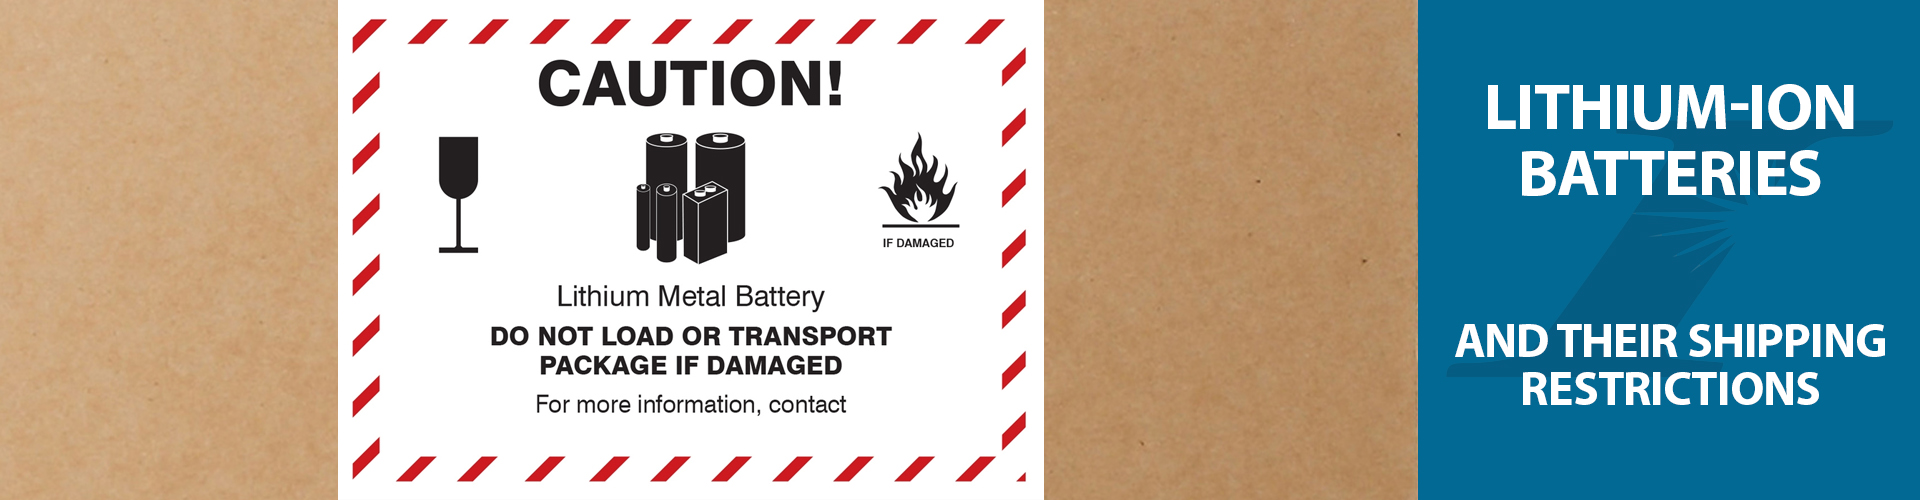 Lithium Ion Batteries And Their Shipping Restrictions